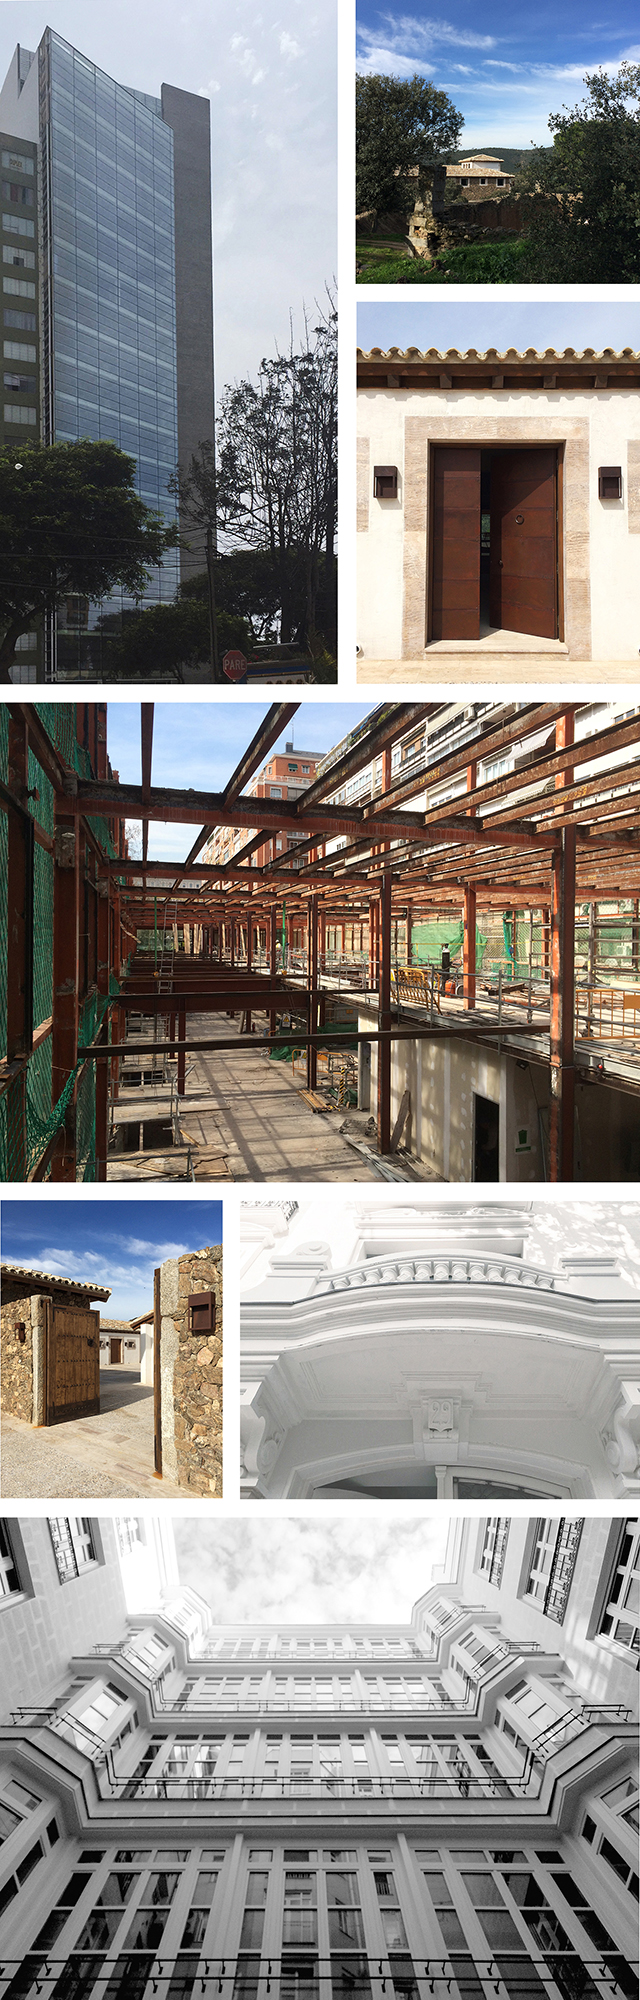 worksinprogress2015_allendearquitectos_01